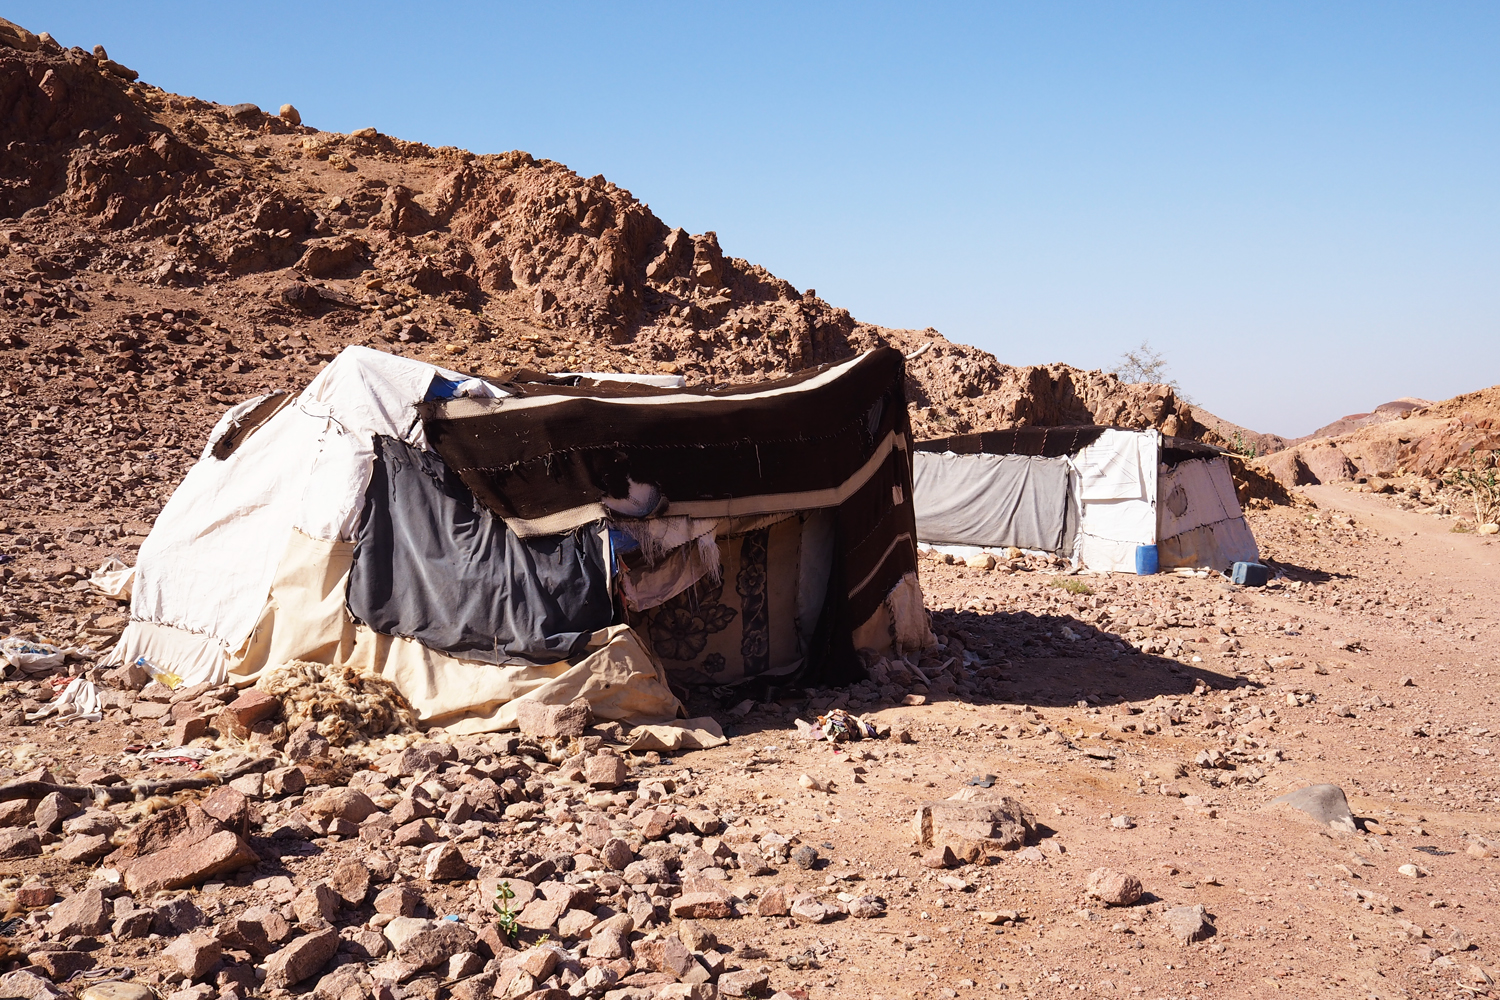 I hiked past several Bedouin camps near Feynan Ecolodge © Sarah Reid